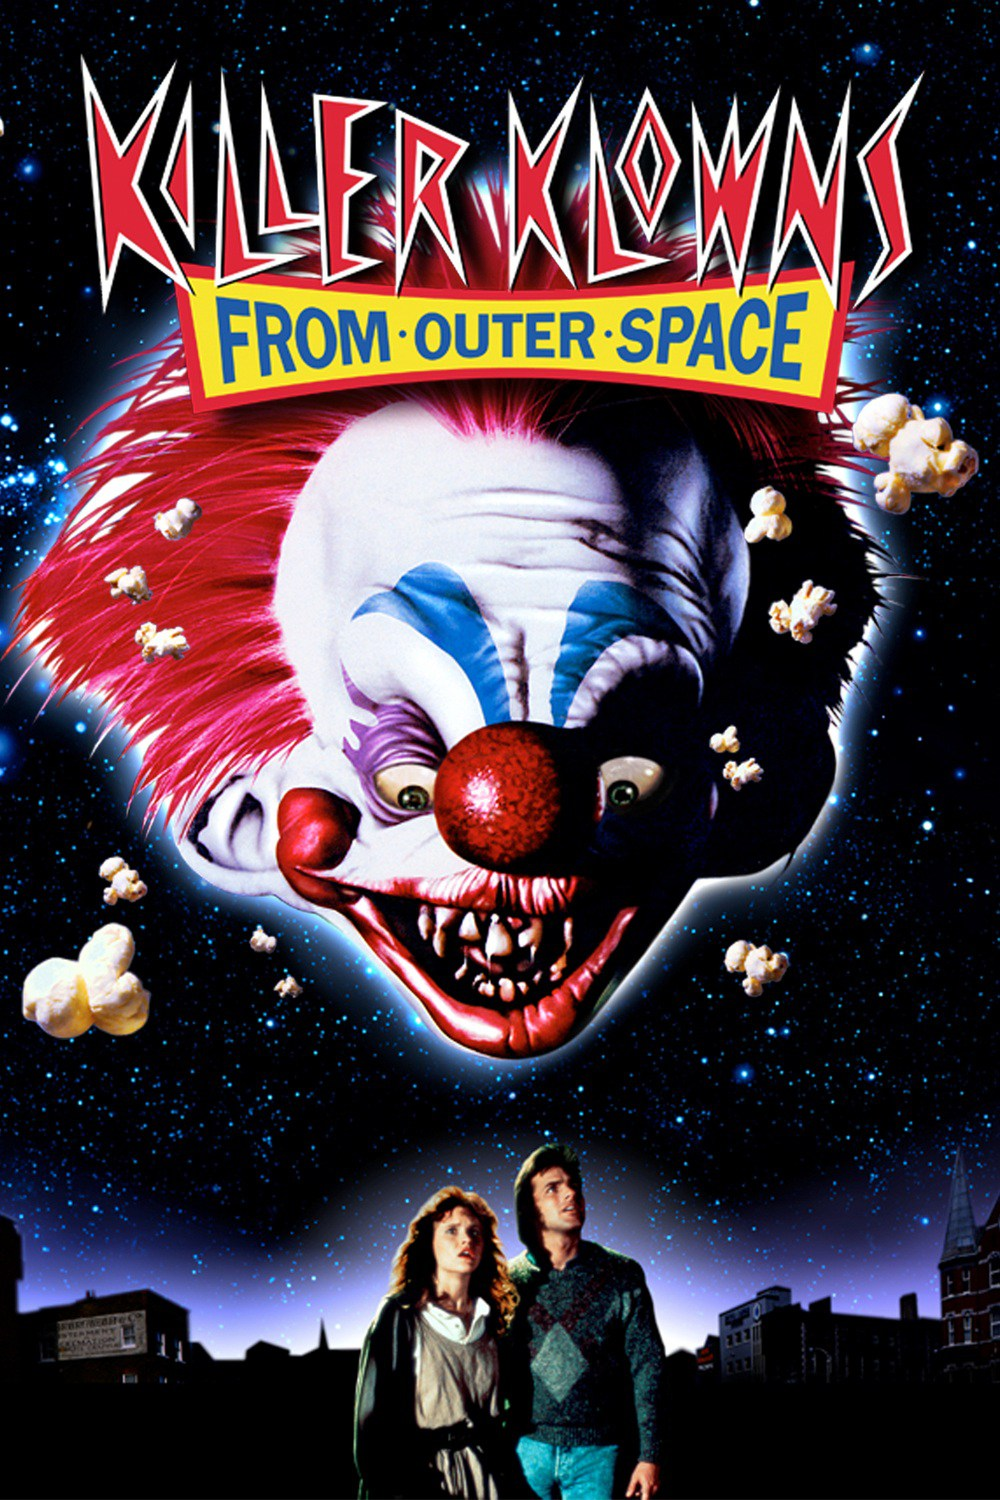 killer klowns from outer space 2 - The Return of the Killer Klowns from Outer Space Killer Klowns Wiki